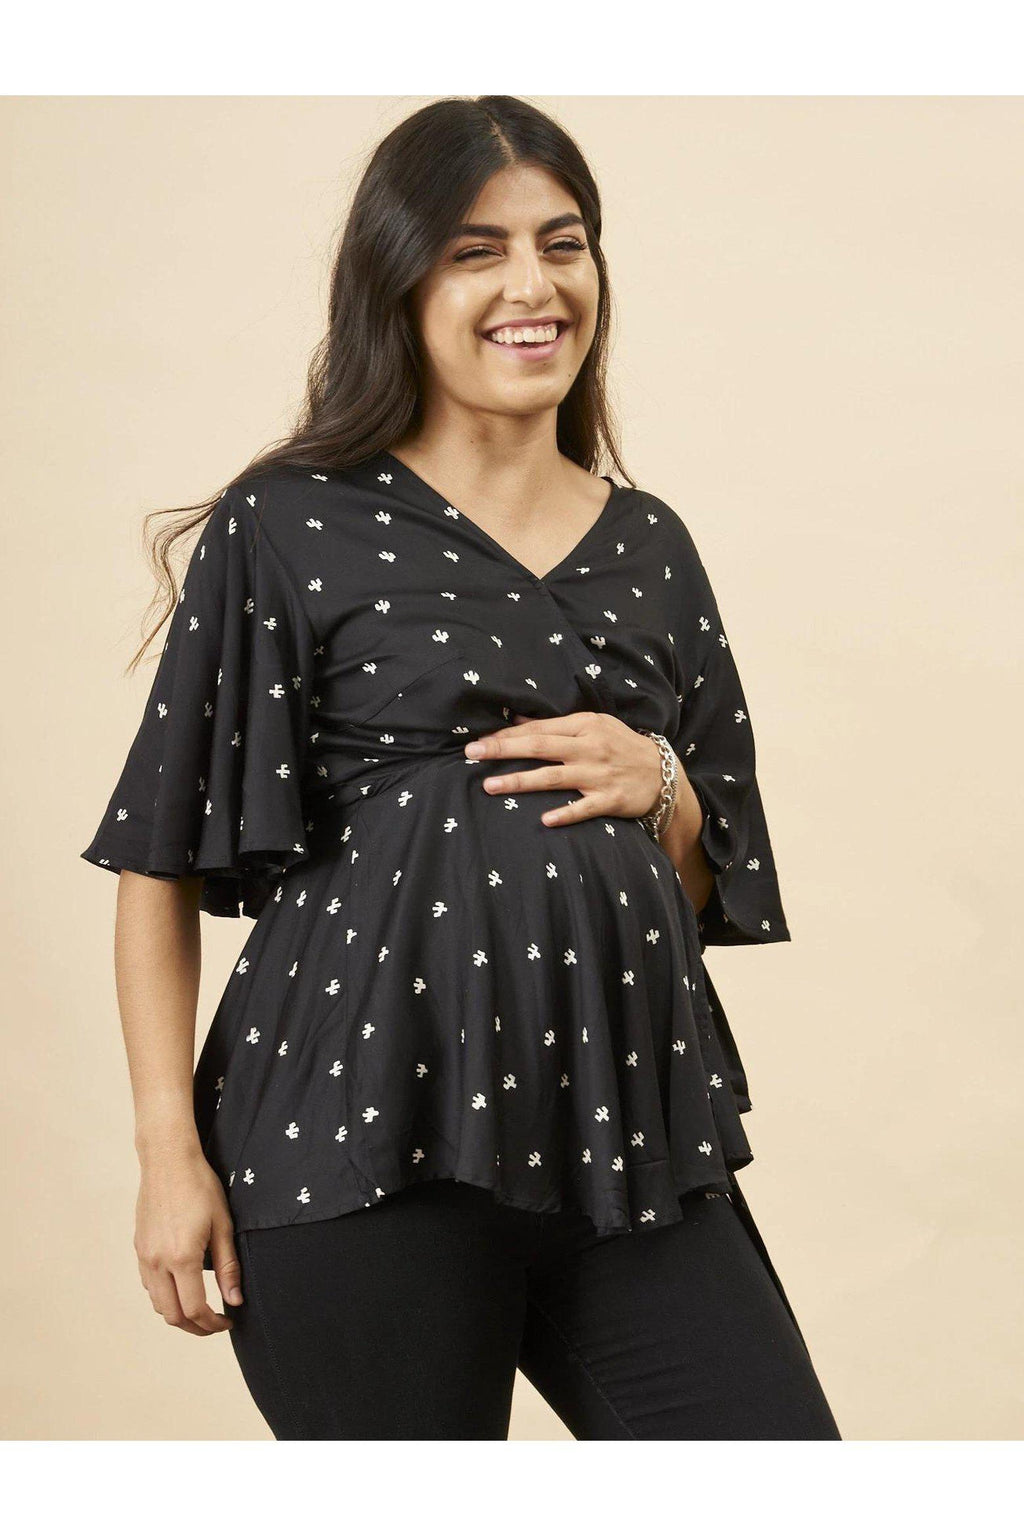 Baby Cacti Peplum Blouse in Black + White